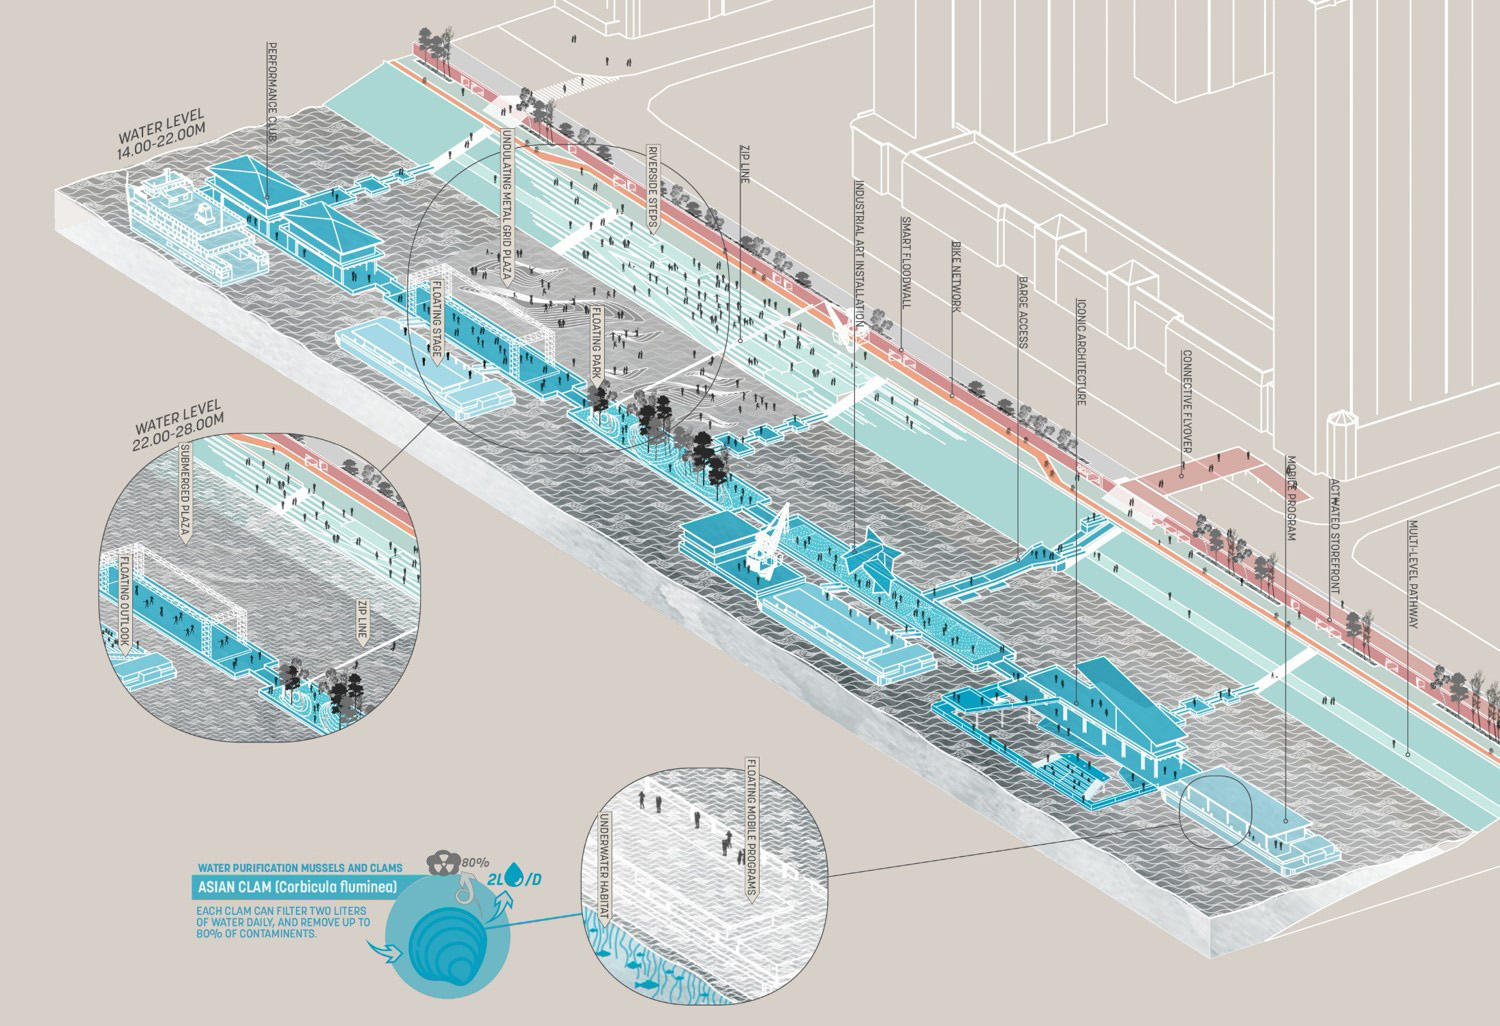 RETHINKING OBSOLETE INFRASTRUCTURE: 68 abandoned infrastructural elements throughout the park that were initially slated for removal are adaptively reused as floating gardens, performance stages, cafes, an SASAKI